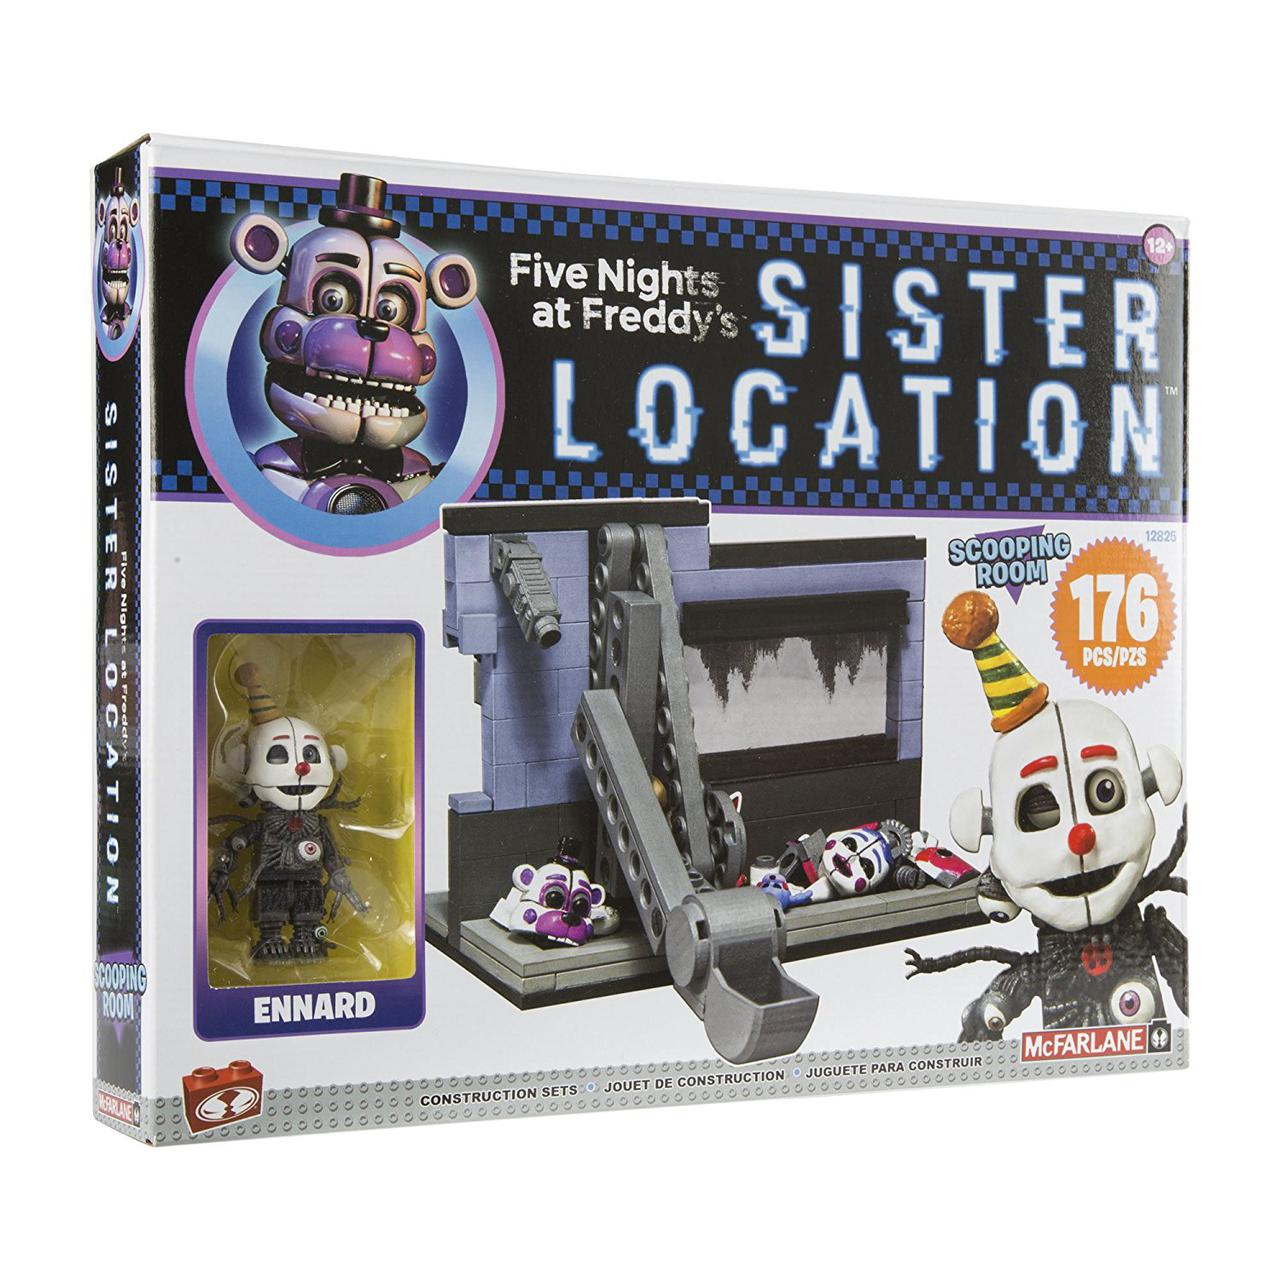 Конструктор 5 ночей с Фредди McFarlane Toys Five Nights At Freddy's Medium Construction Set, Scooping Room